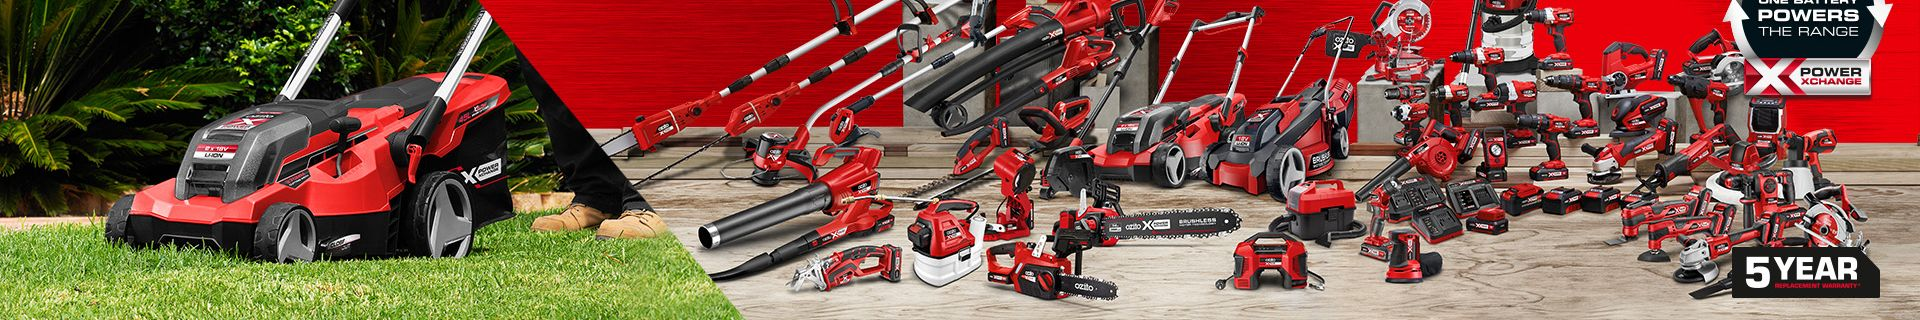 Over 70 tools available. One battery powers the range. 5 year replacement warranty.